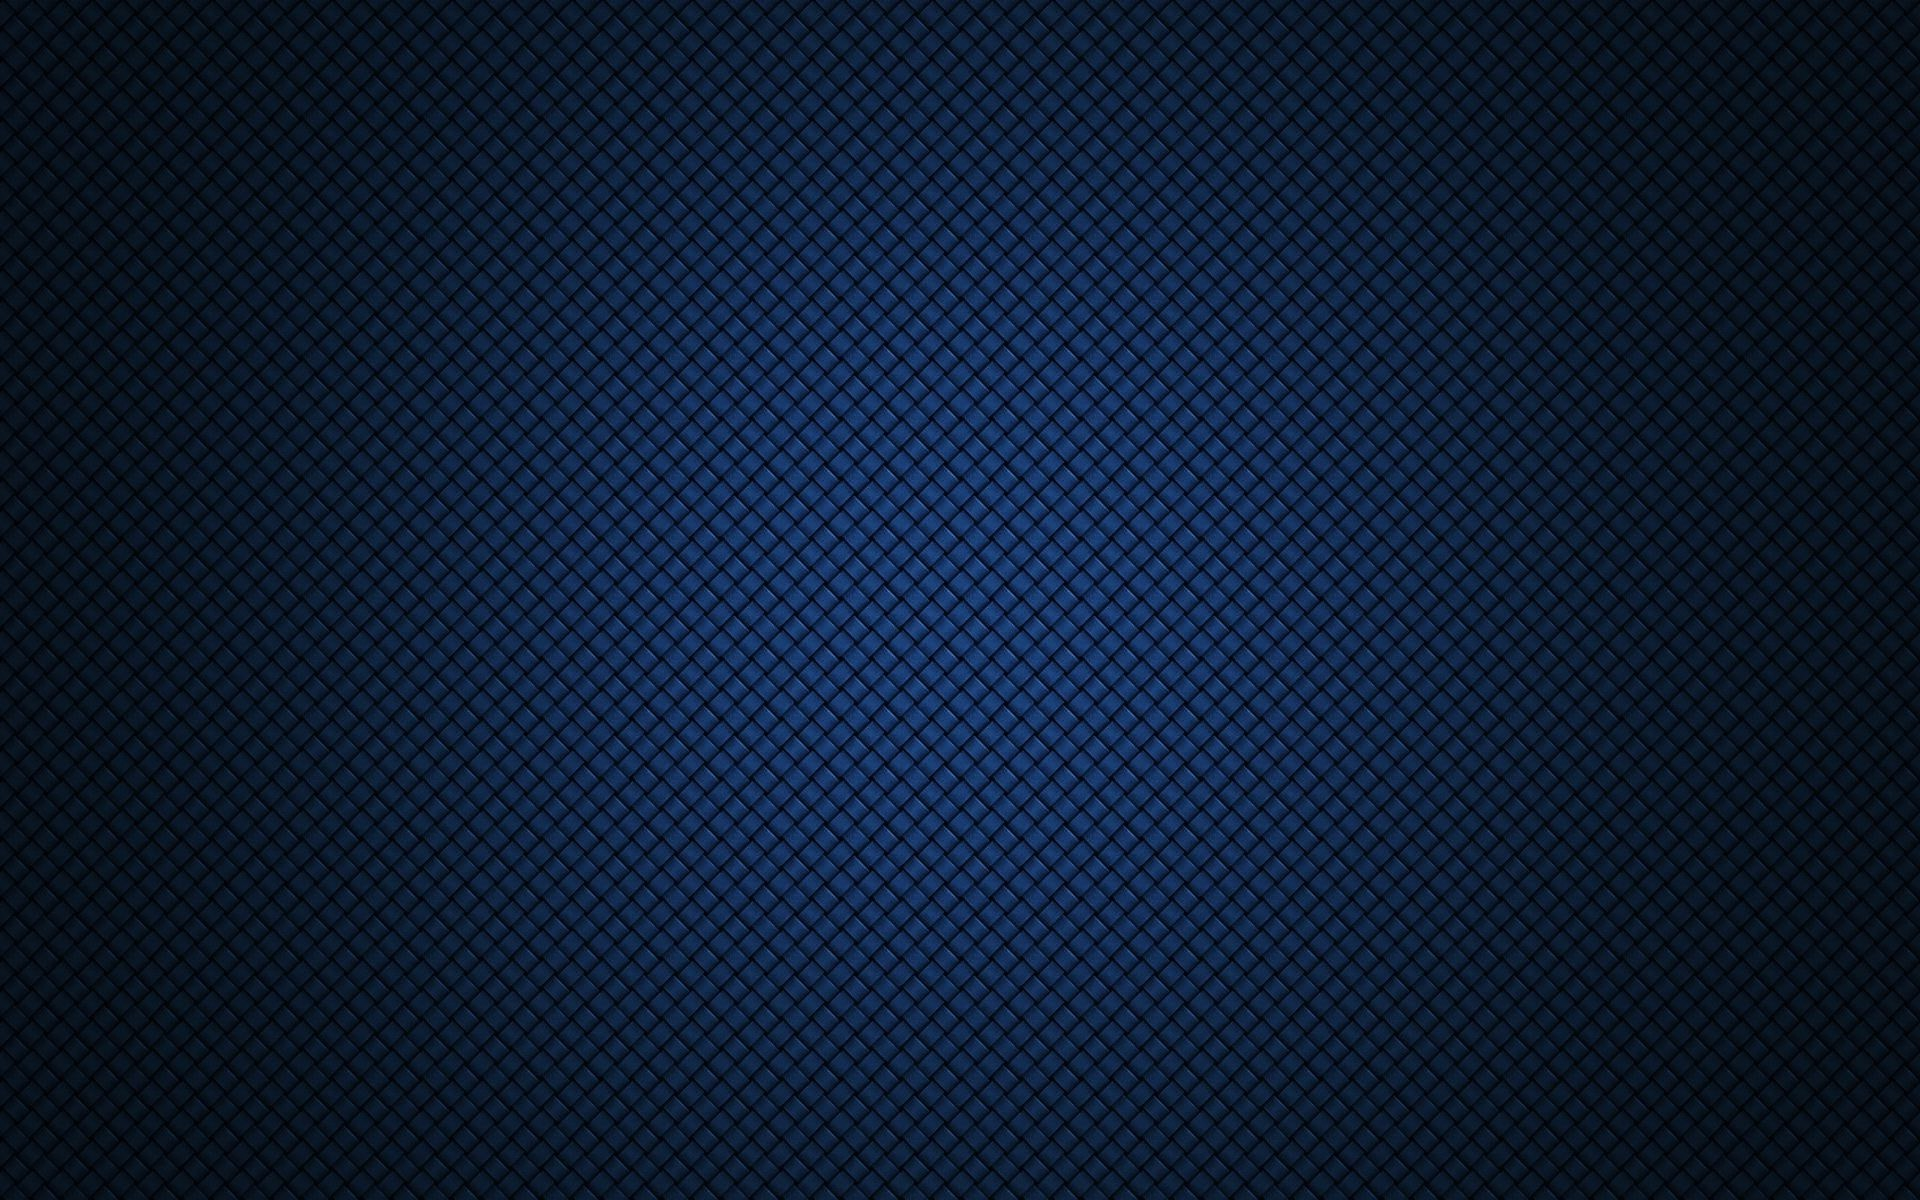 1920x1200 Dark blue checks plain HD wallpapers HD Wallpapers Rocks